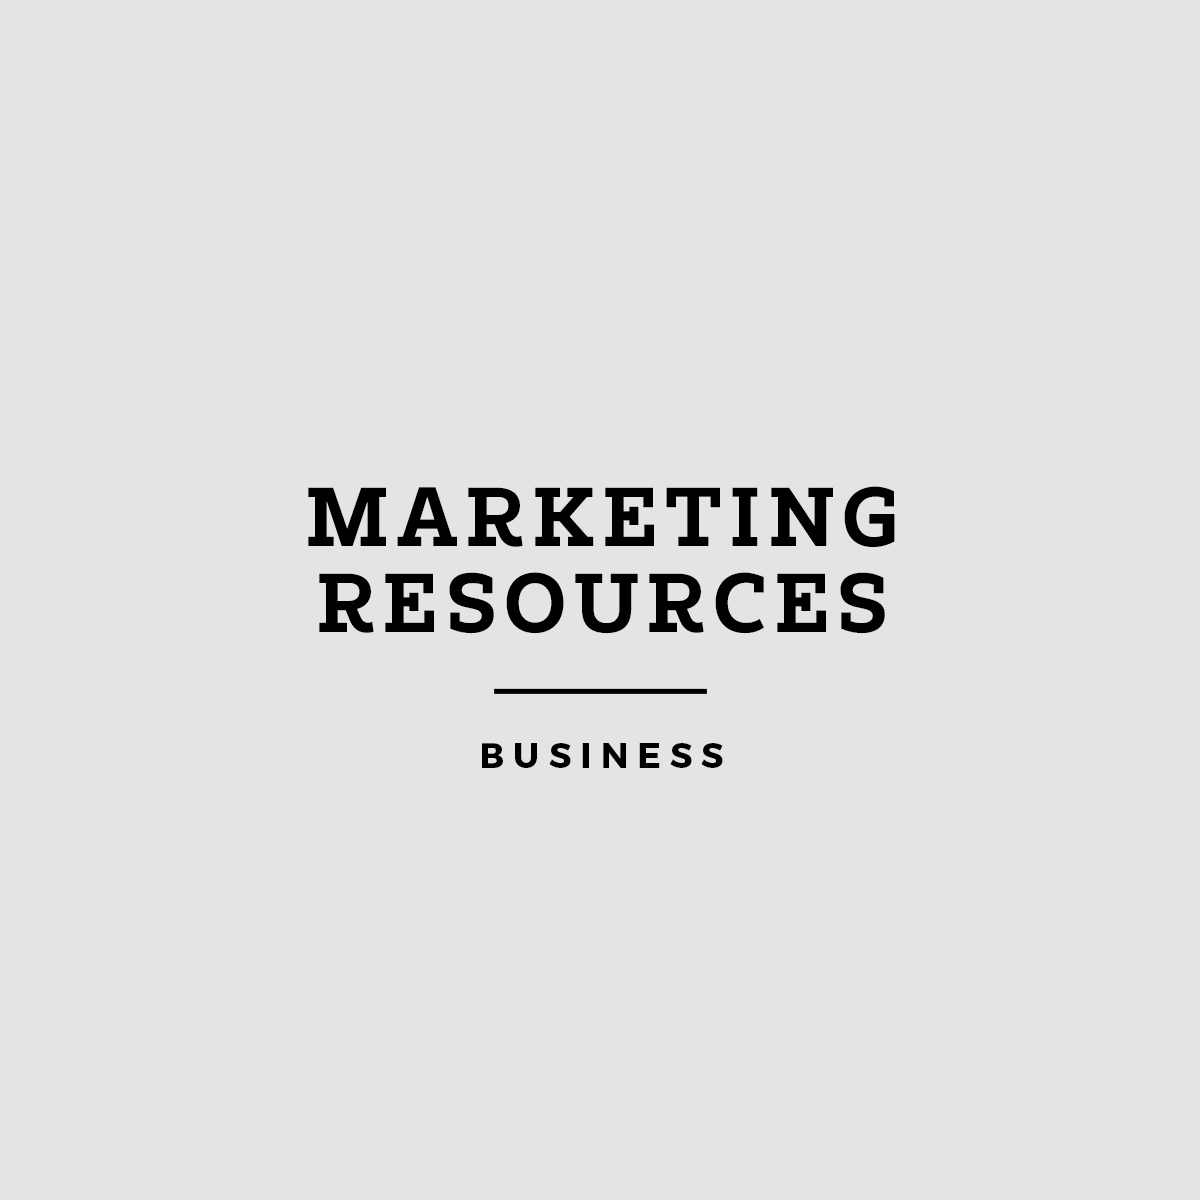 Marketing Resources - PINTEREST BOARD COVERS.jpg